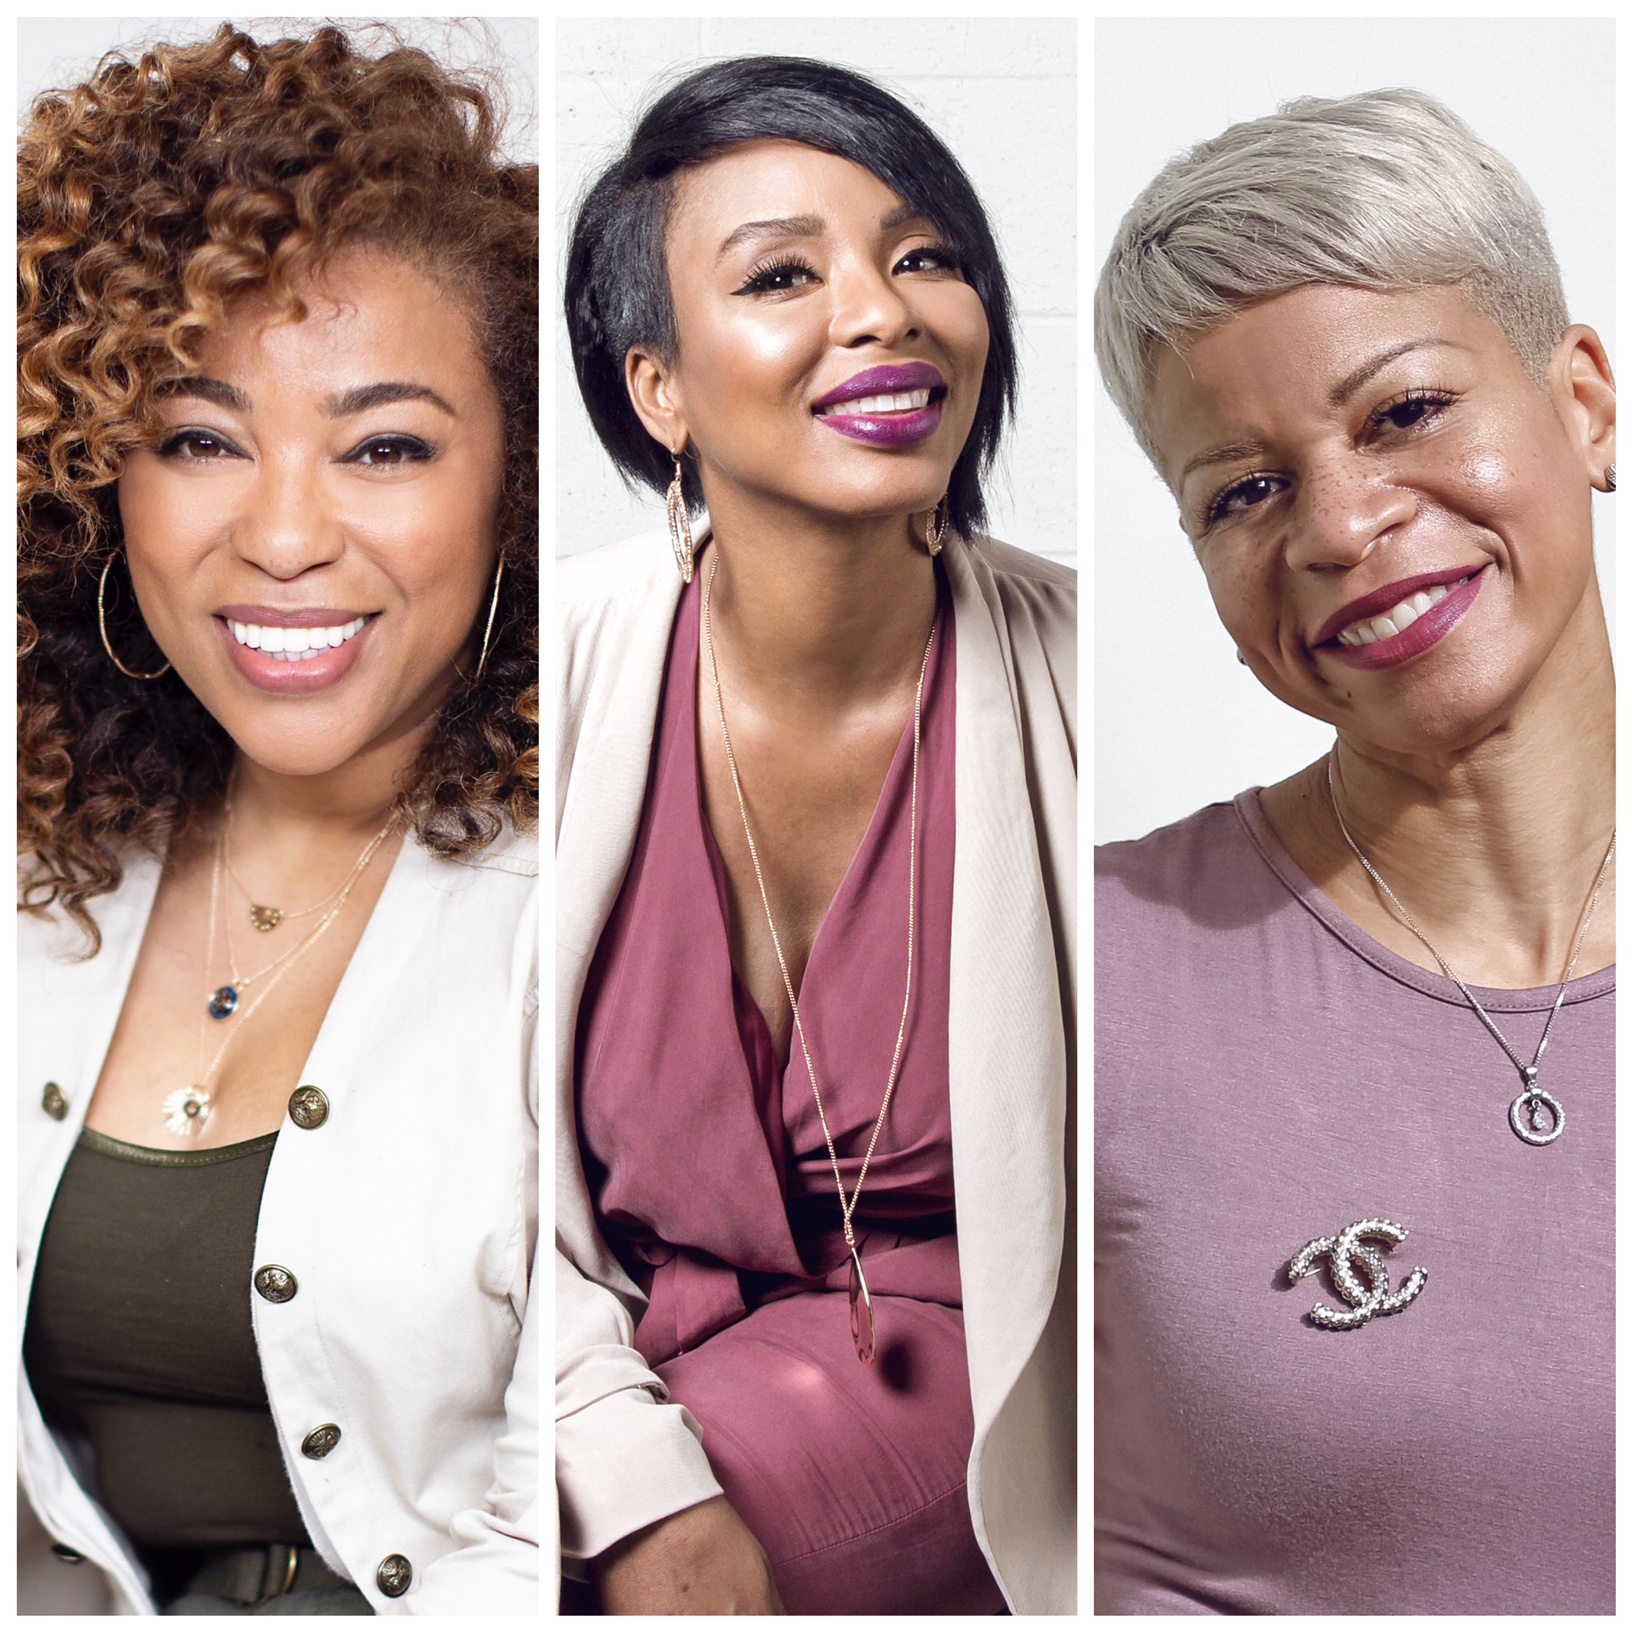 Mizani announces new education leadership. From left: Mizani Global Artistic Director, Tippi Shorter; Mizani Global Artistic Director, Pekela Riley and Mizani Techncal Director, Evie Johnson